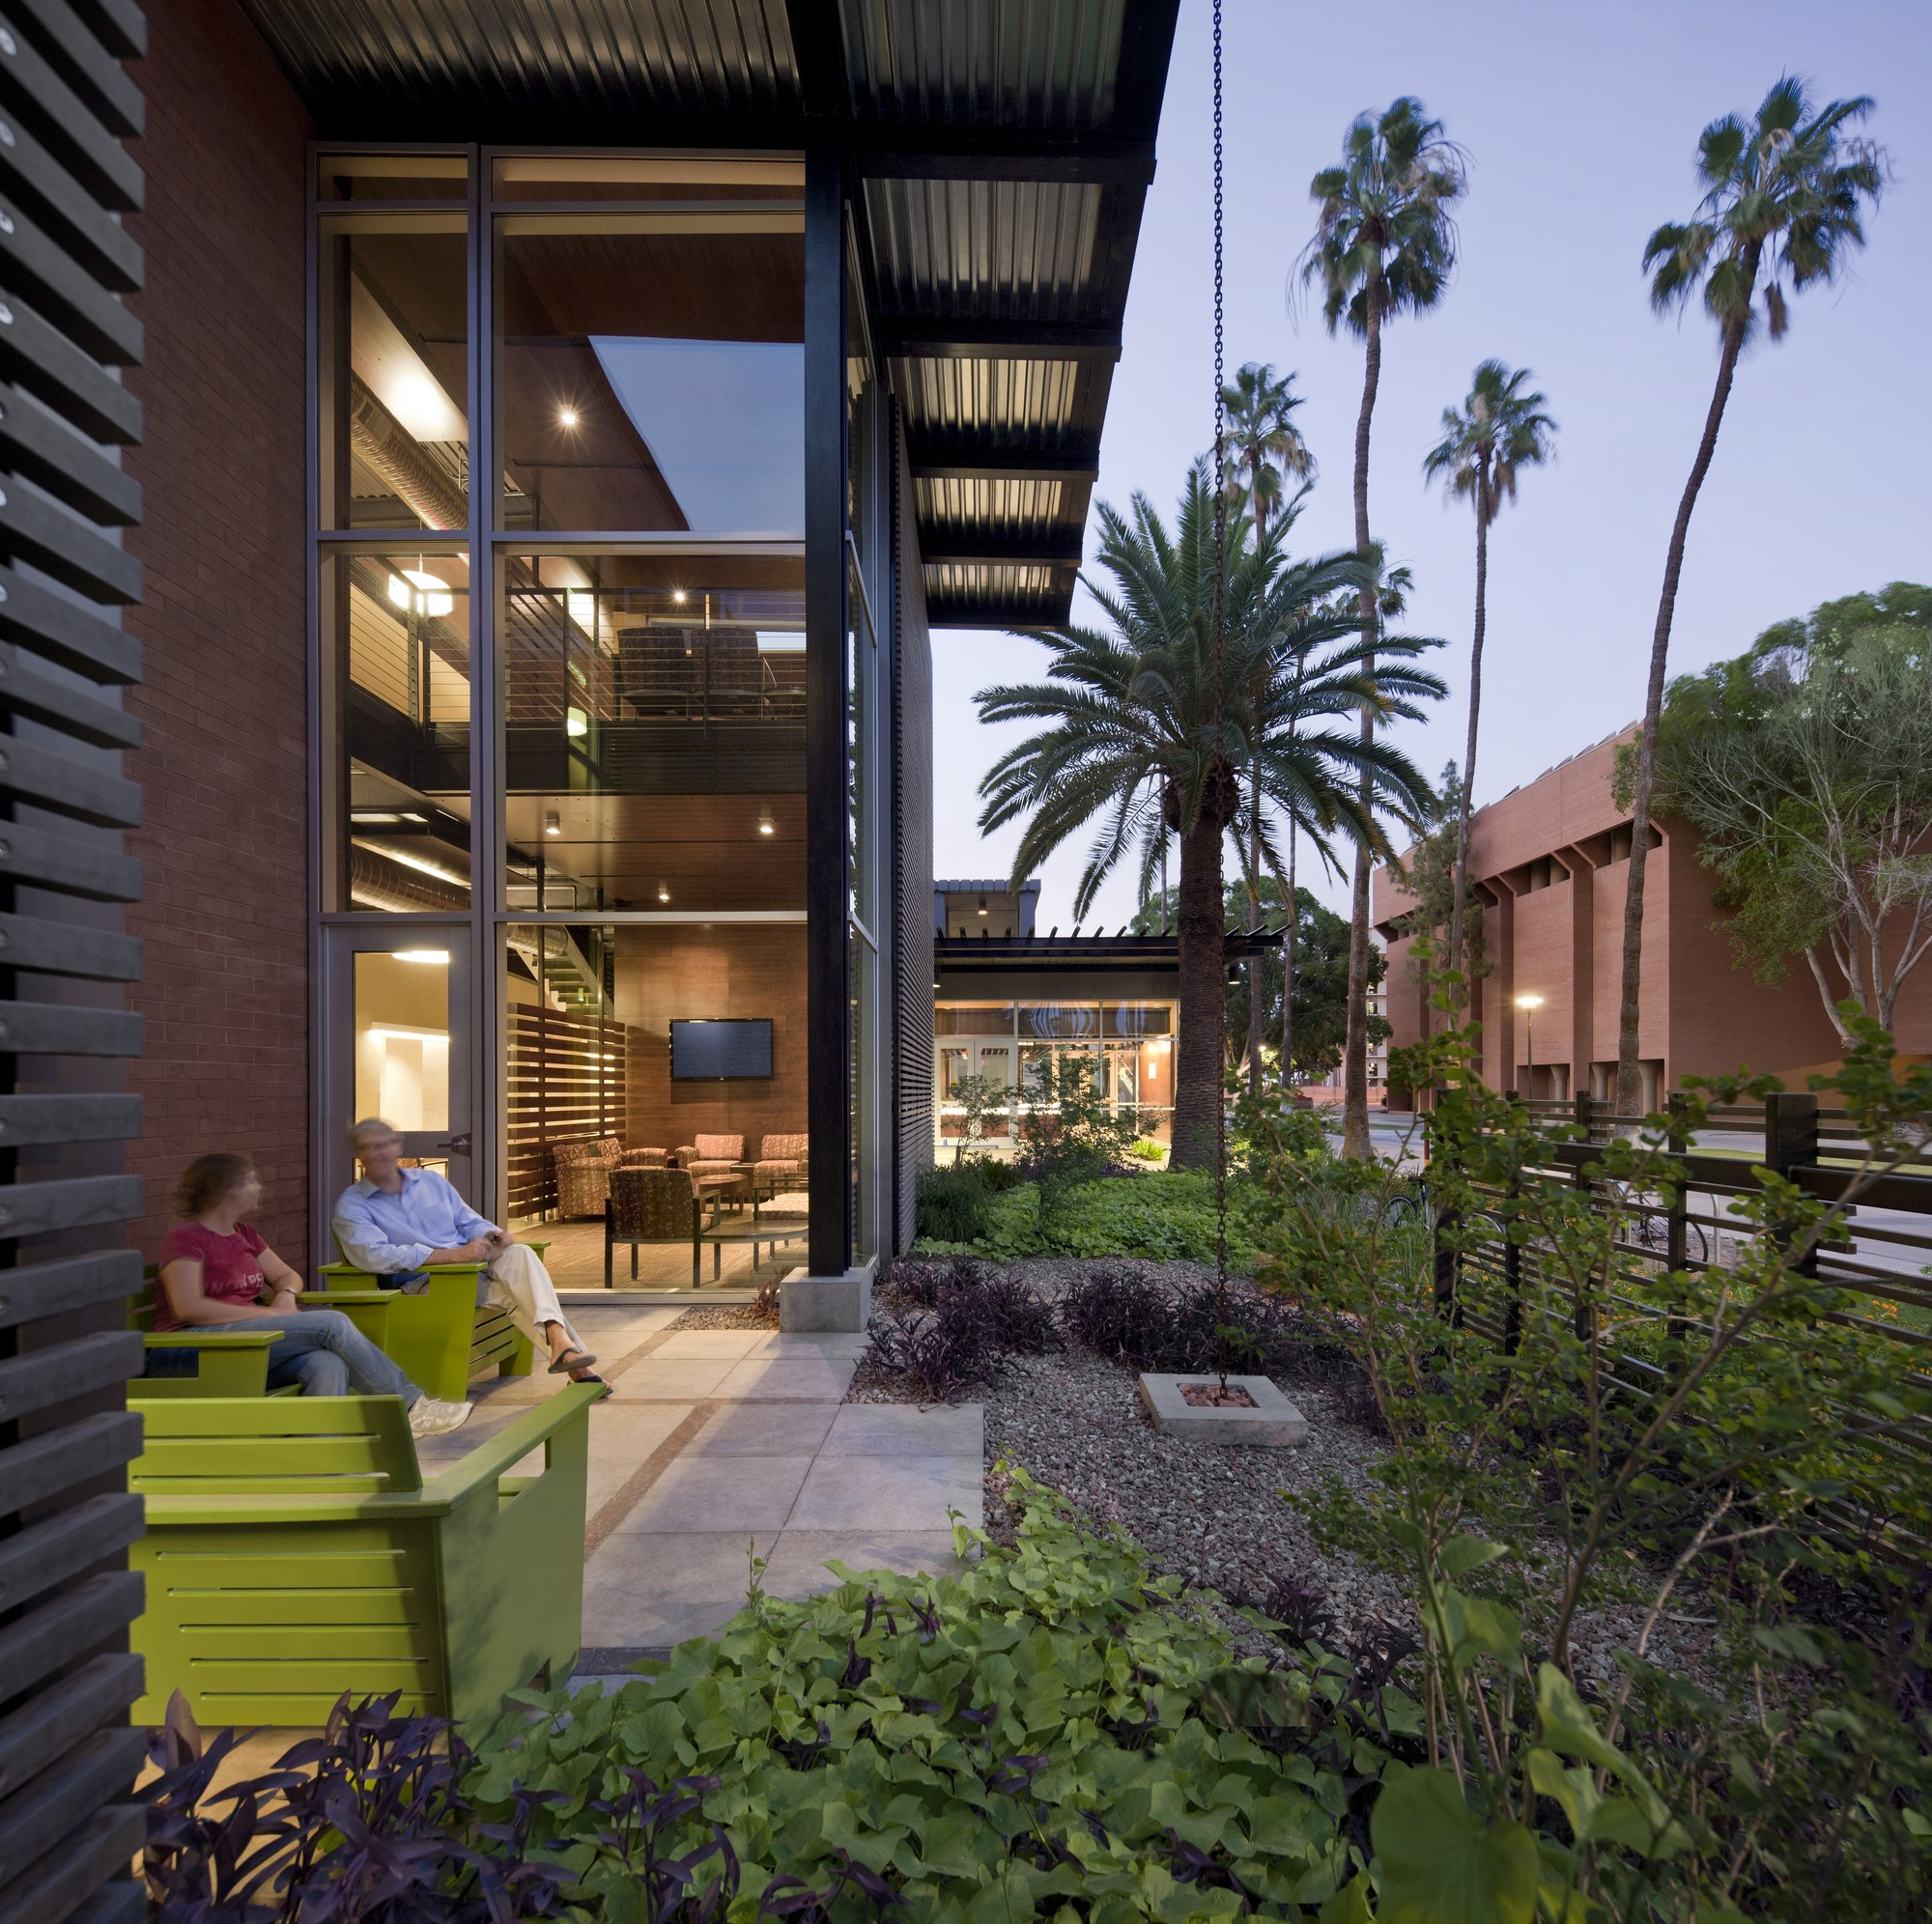 Arizona State University Student Health Services; Tempe, Arizona / Lake|Flato Architects + Orcutt|Winslow © Bill Timmerman